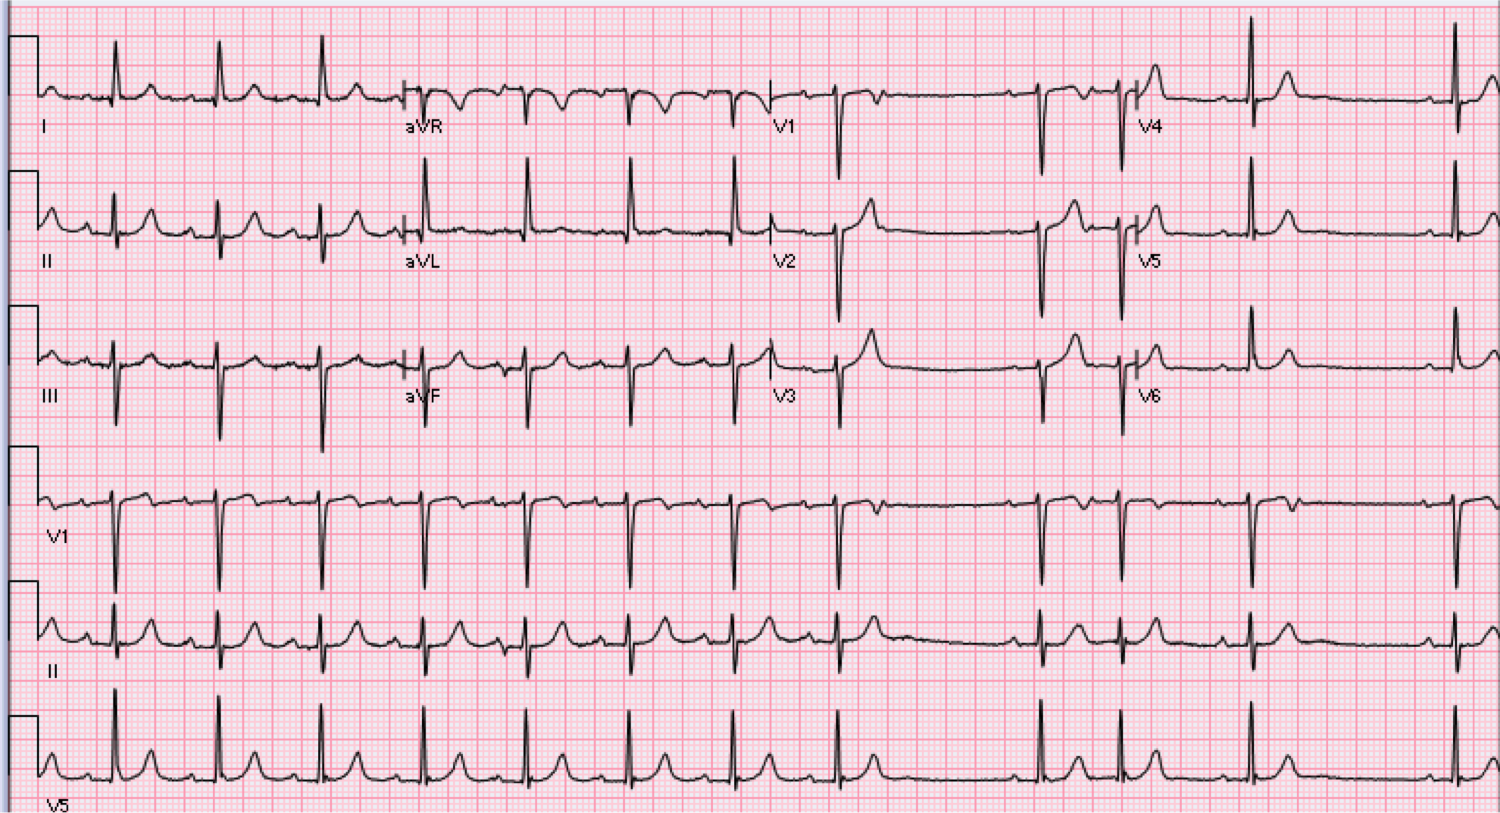 64 year old male with syncope.